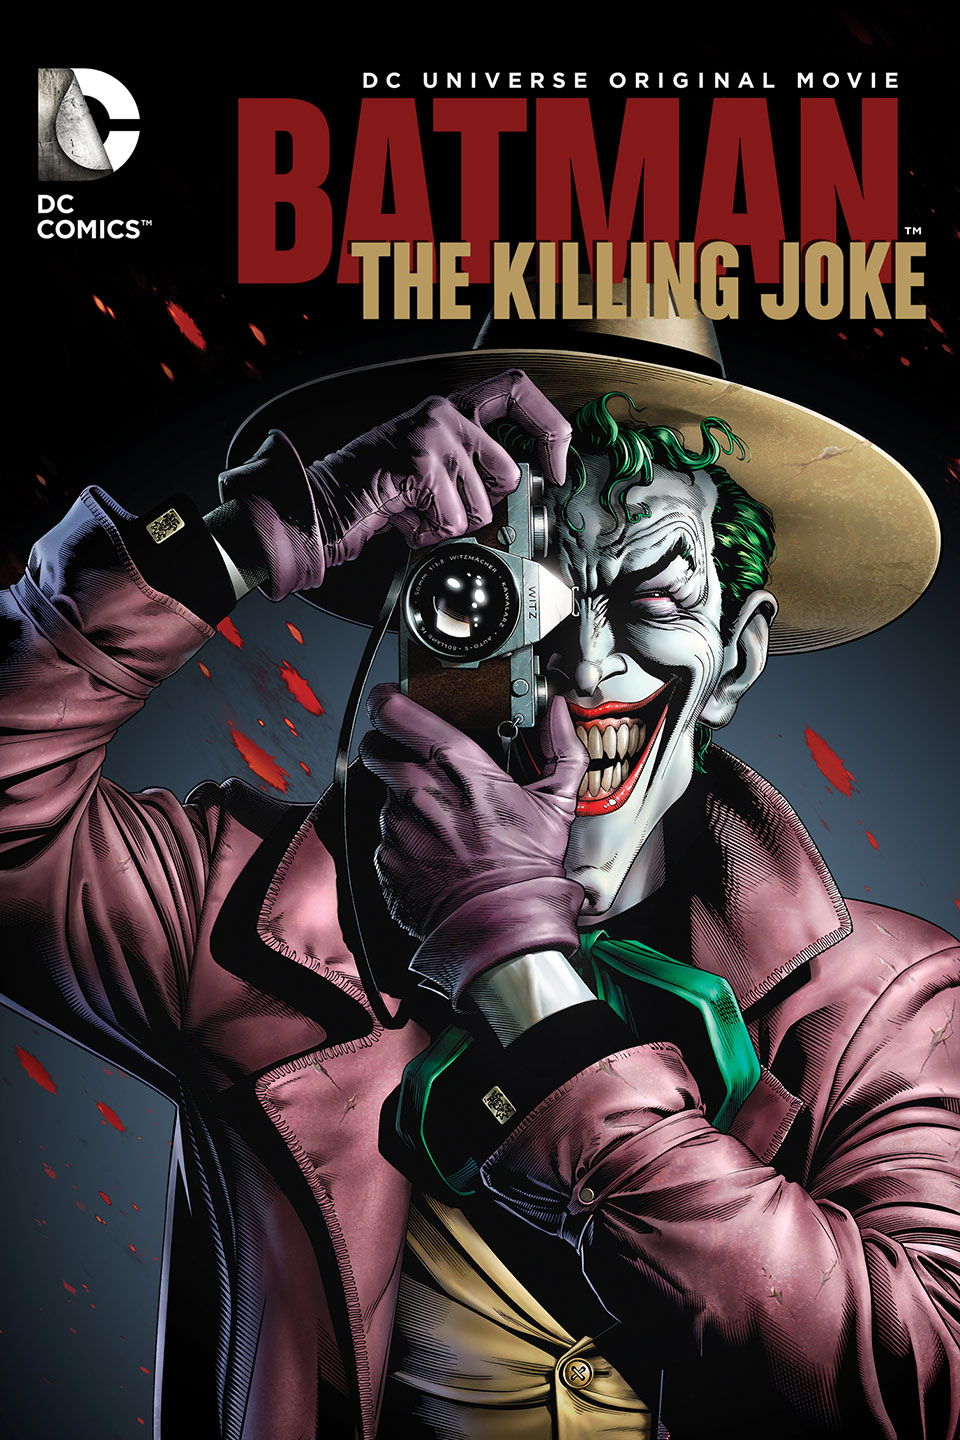 Batman-The-Killing-Joke-960x1440-Portrate